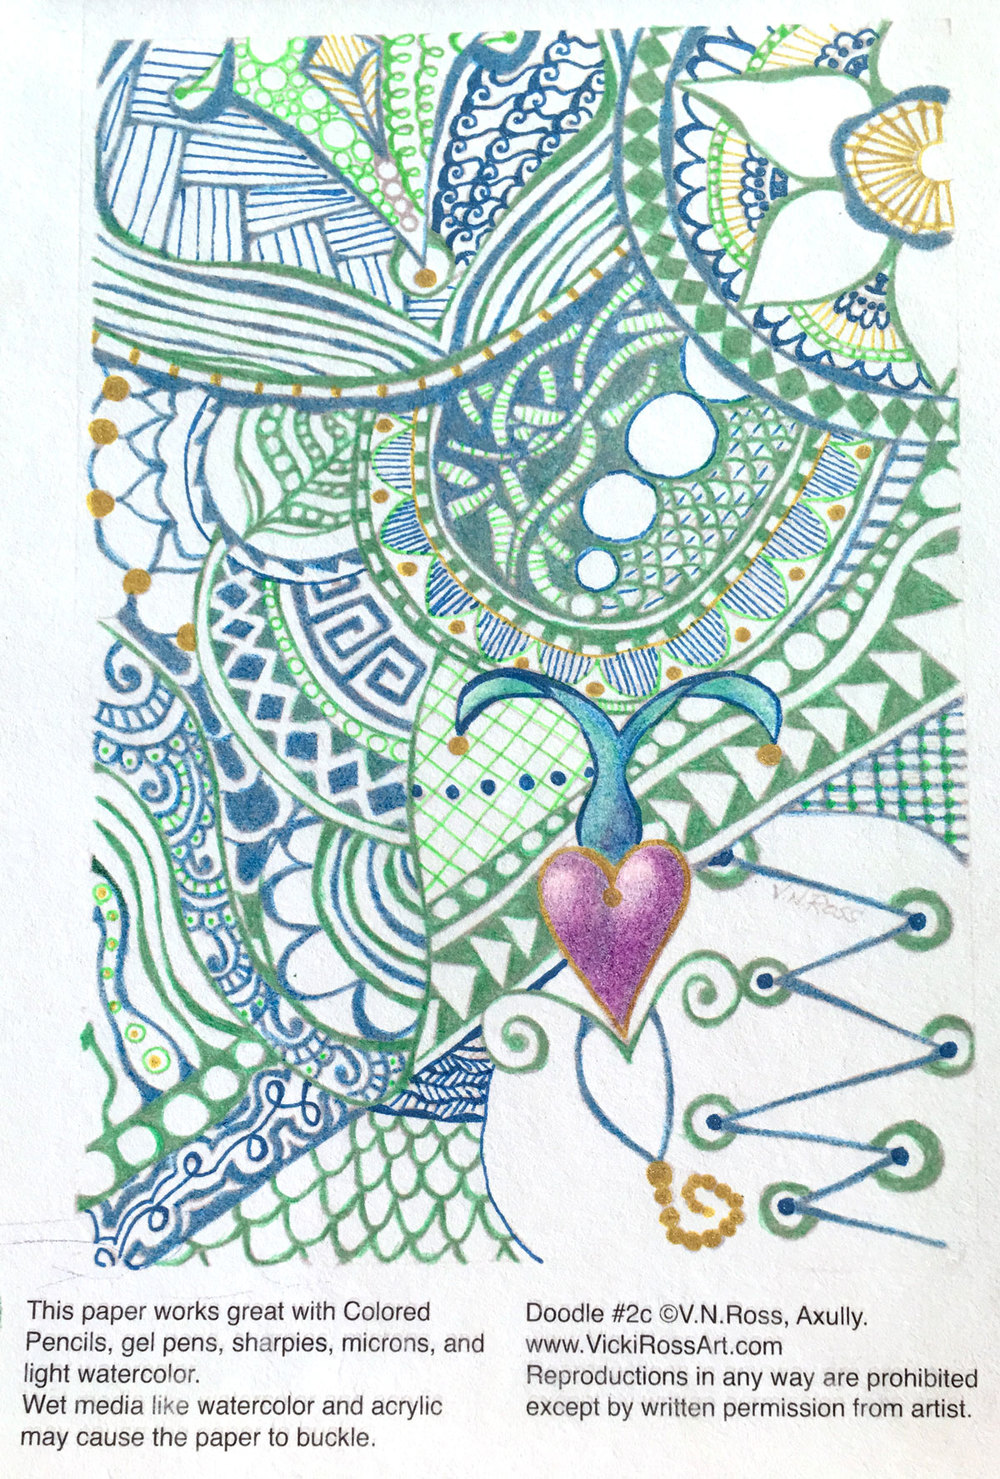 My $5 Patrons on the Patreon platform get a digital file with three versions of one of my original Doodle Coloring Pages CLICK HERE. You can purchase direct for $7.50 CLICK HERE.Or, if you are in Rogers, AR, The Rusted Rooster Antique Mall on Walnut Street has two prints for $8.50.